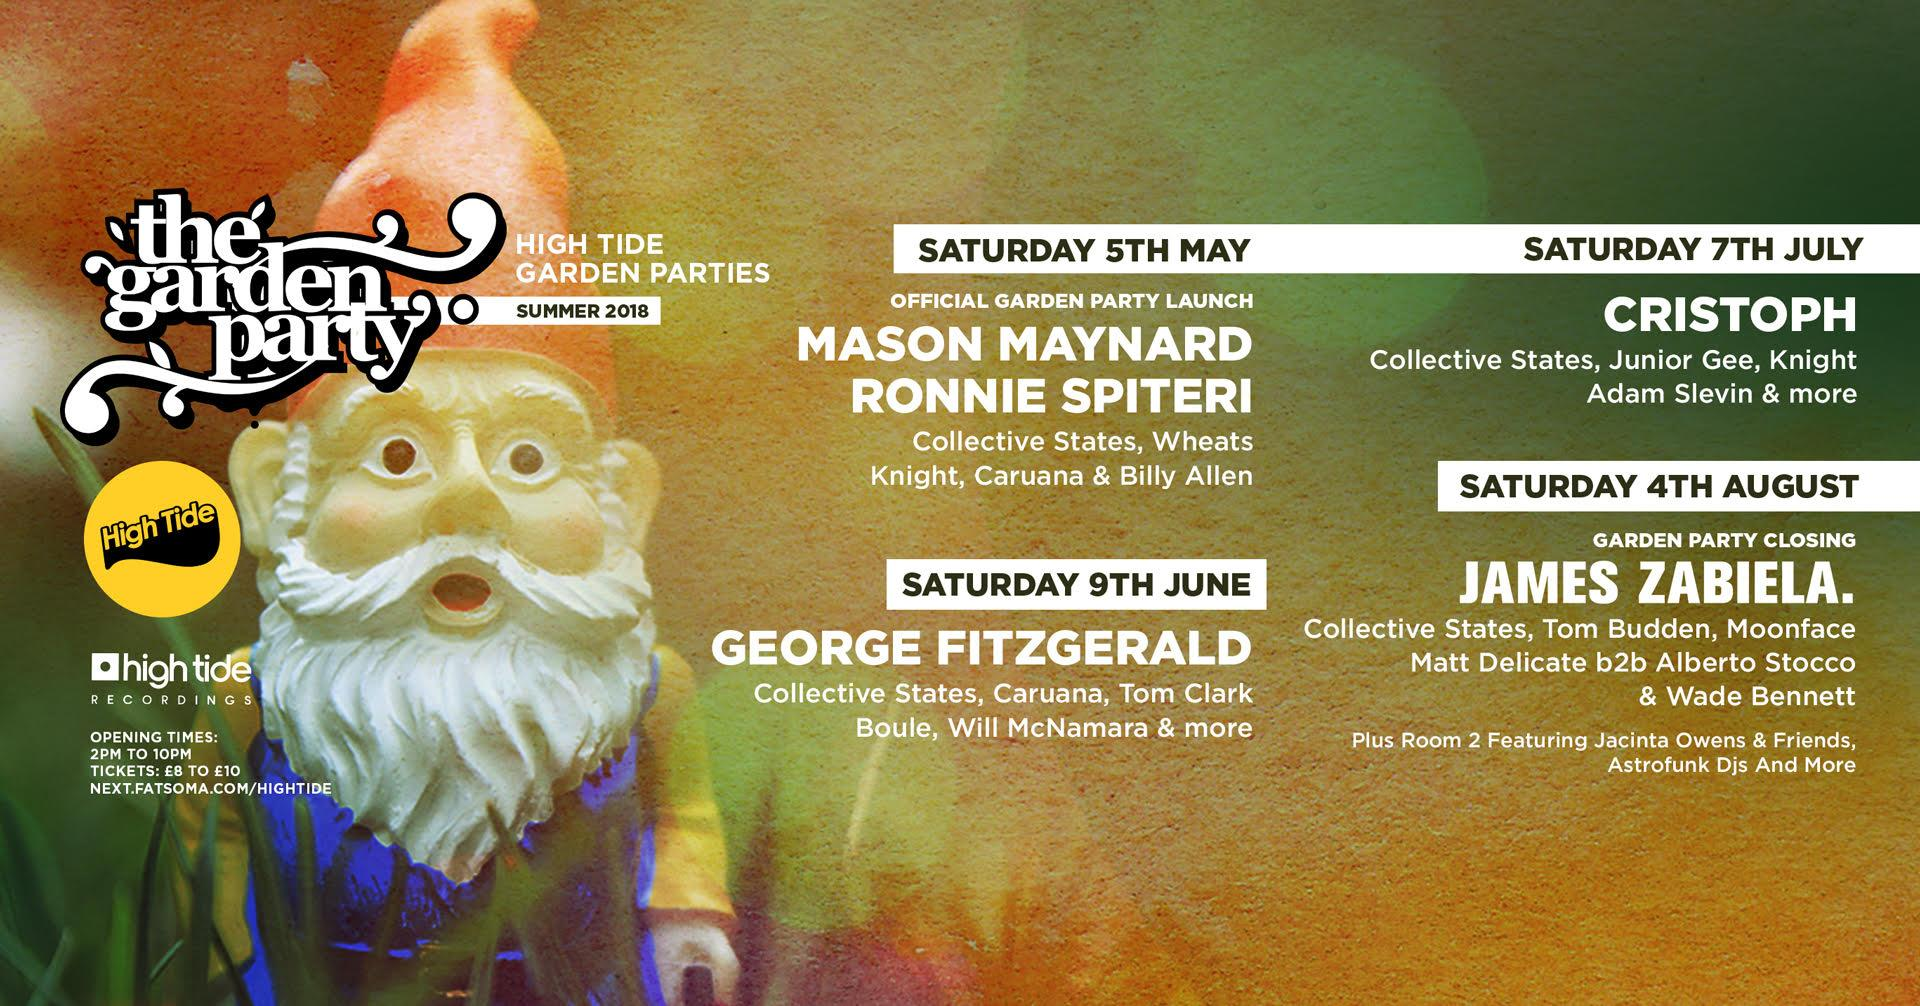 High tide garden party feat james zabiela tickets sobar event flyer malvernweather Image collections